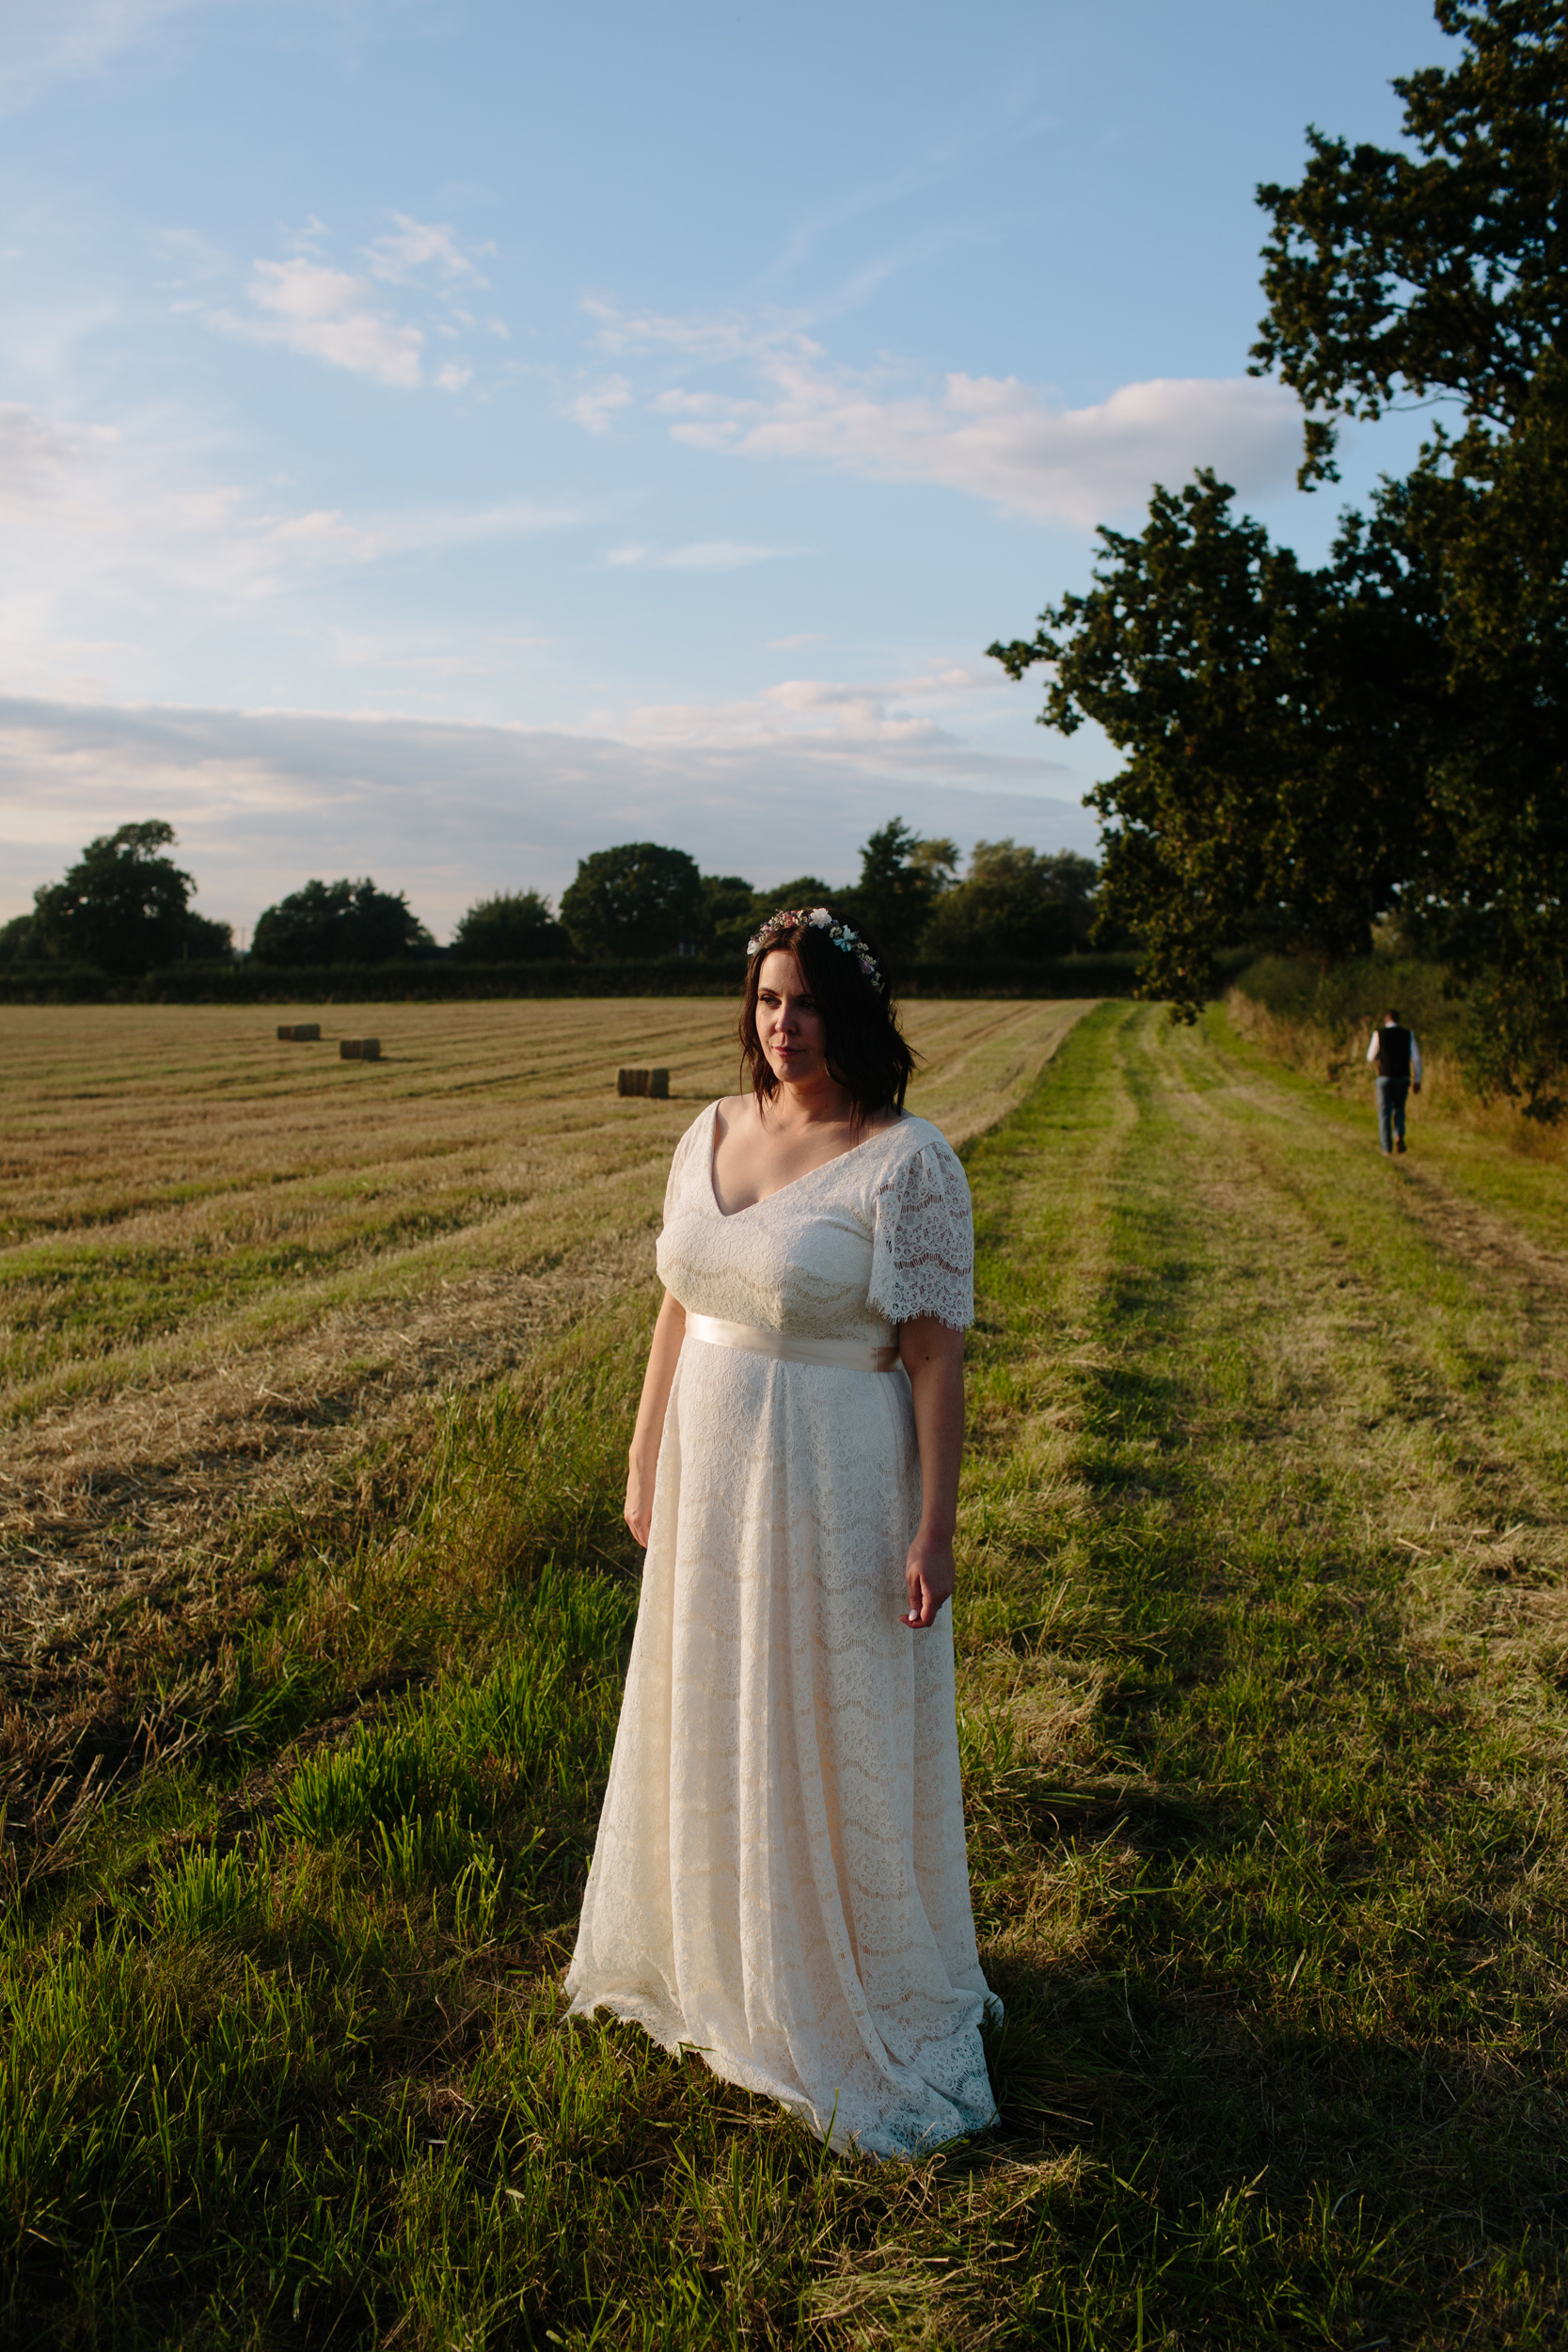 Leanne-Kate-Beaumont-Dahlia-lace-wedding-gown-village-hall-wedding-Dan-Hough-Photography-19.jpg